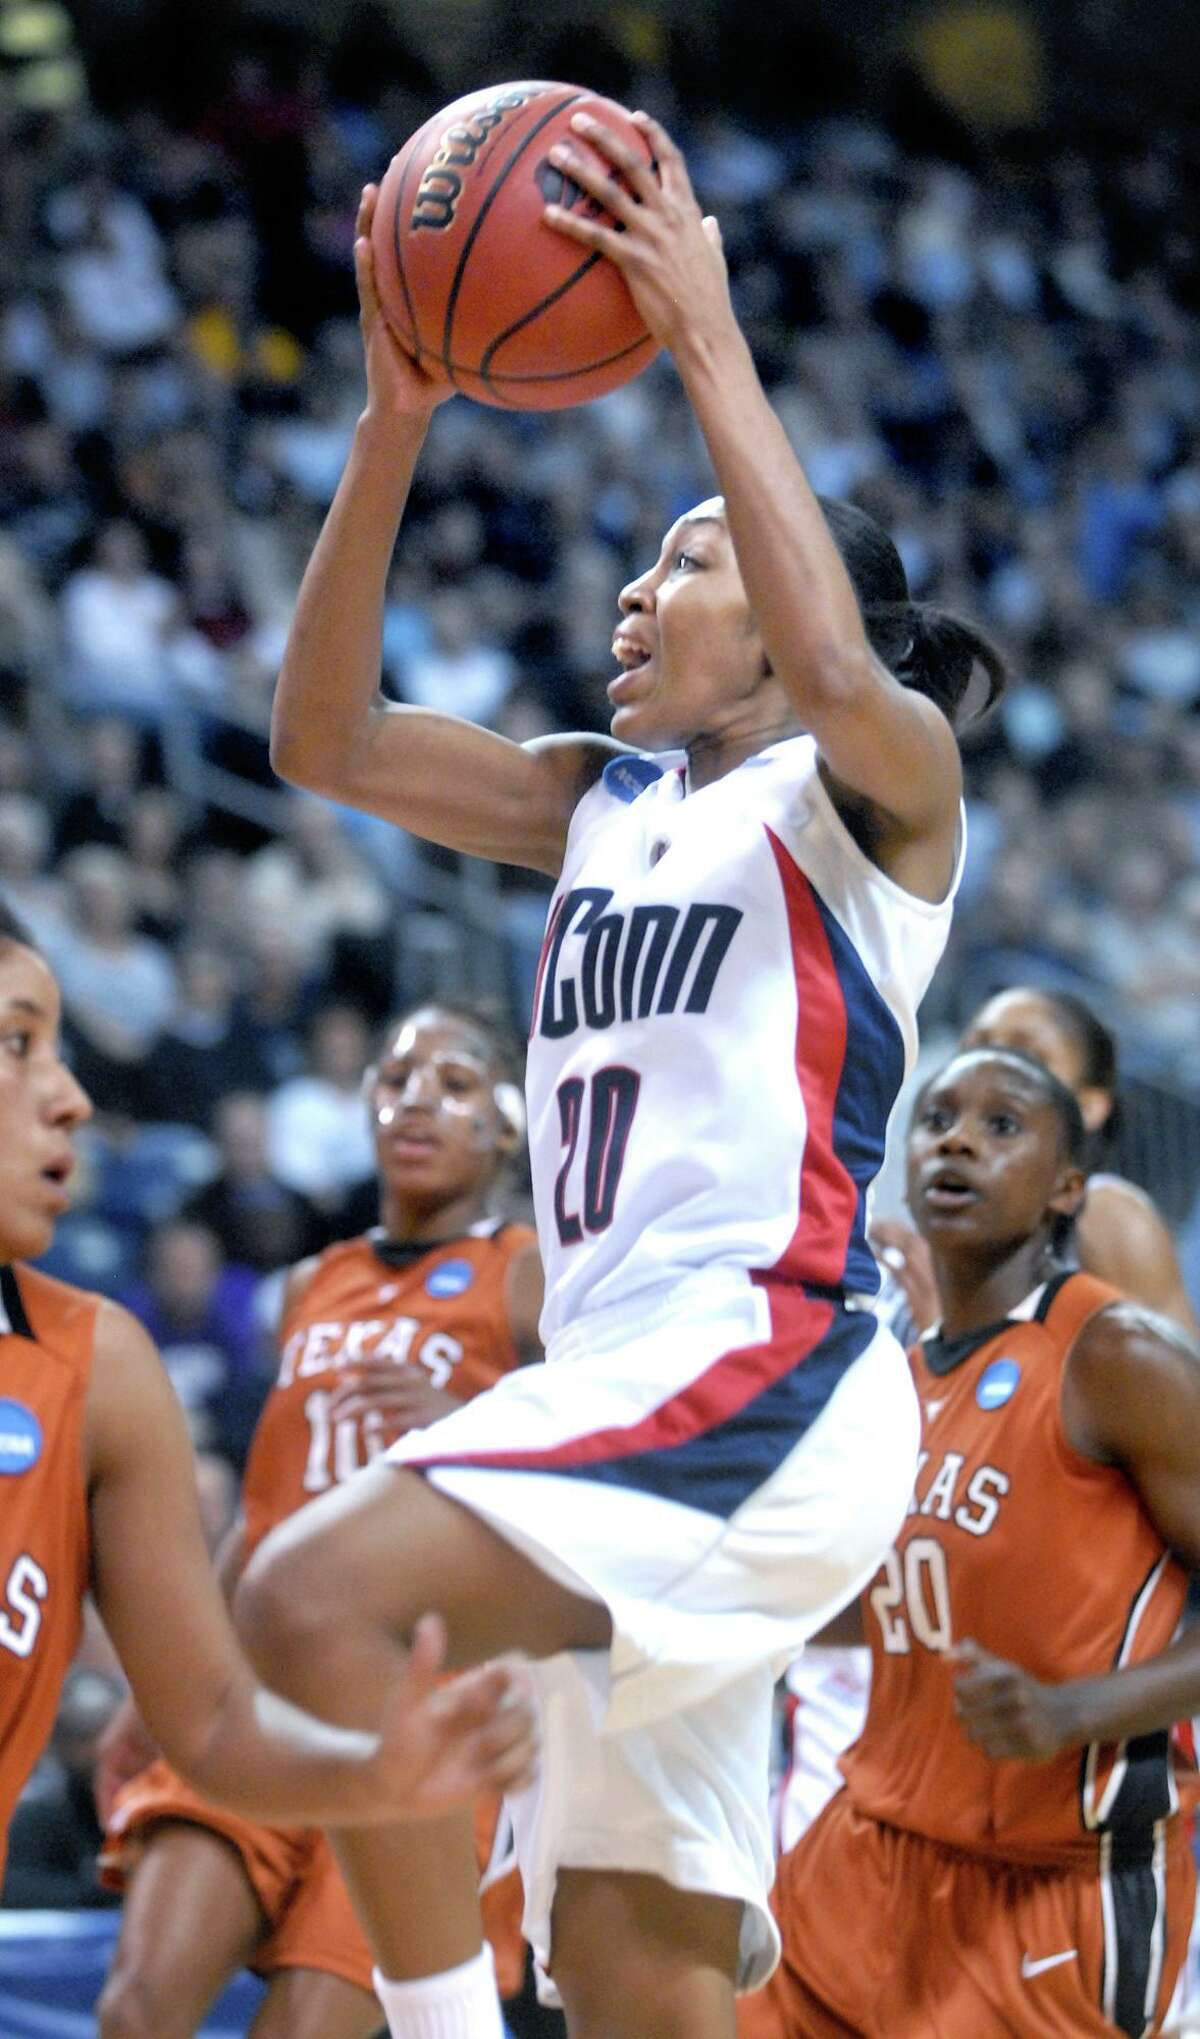 Renee Montgomery (center) of UCONN drives to the basket against Texas in the first half of the second round of the NCAA tournament in Bridgeport on 3/25/2008.